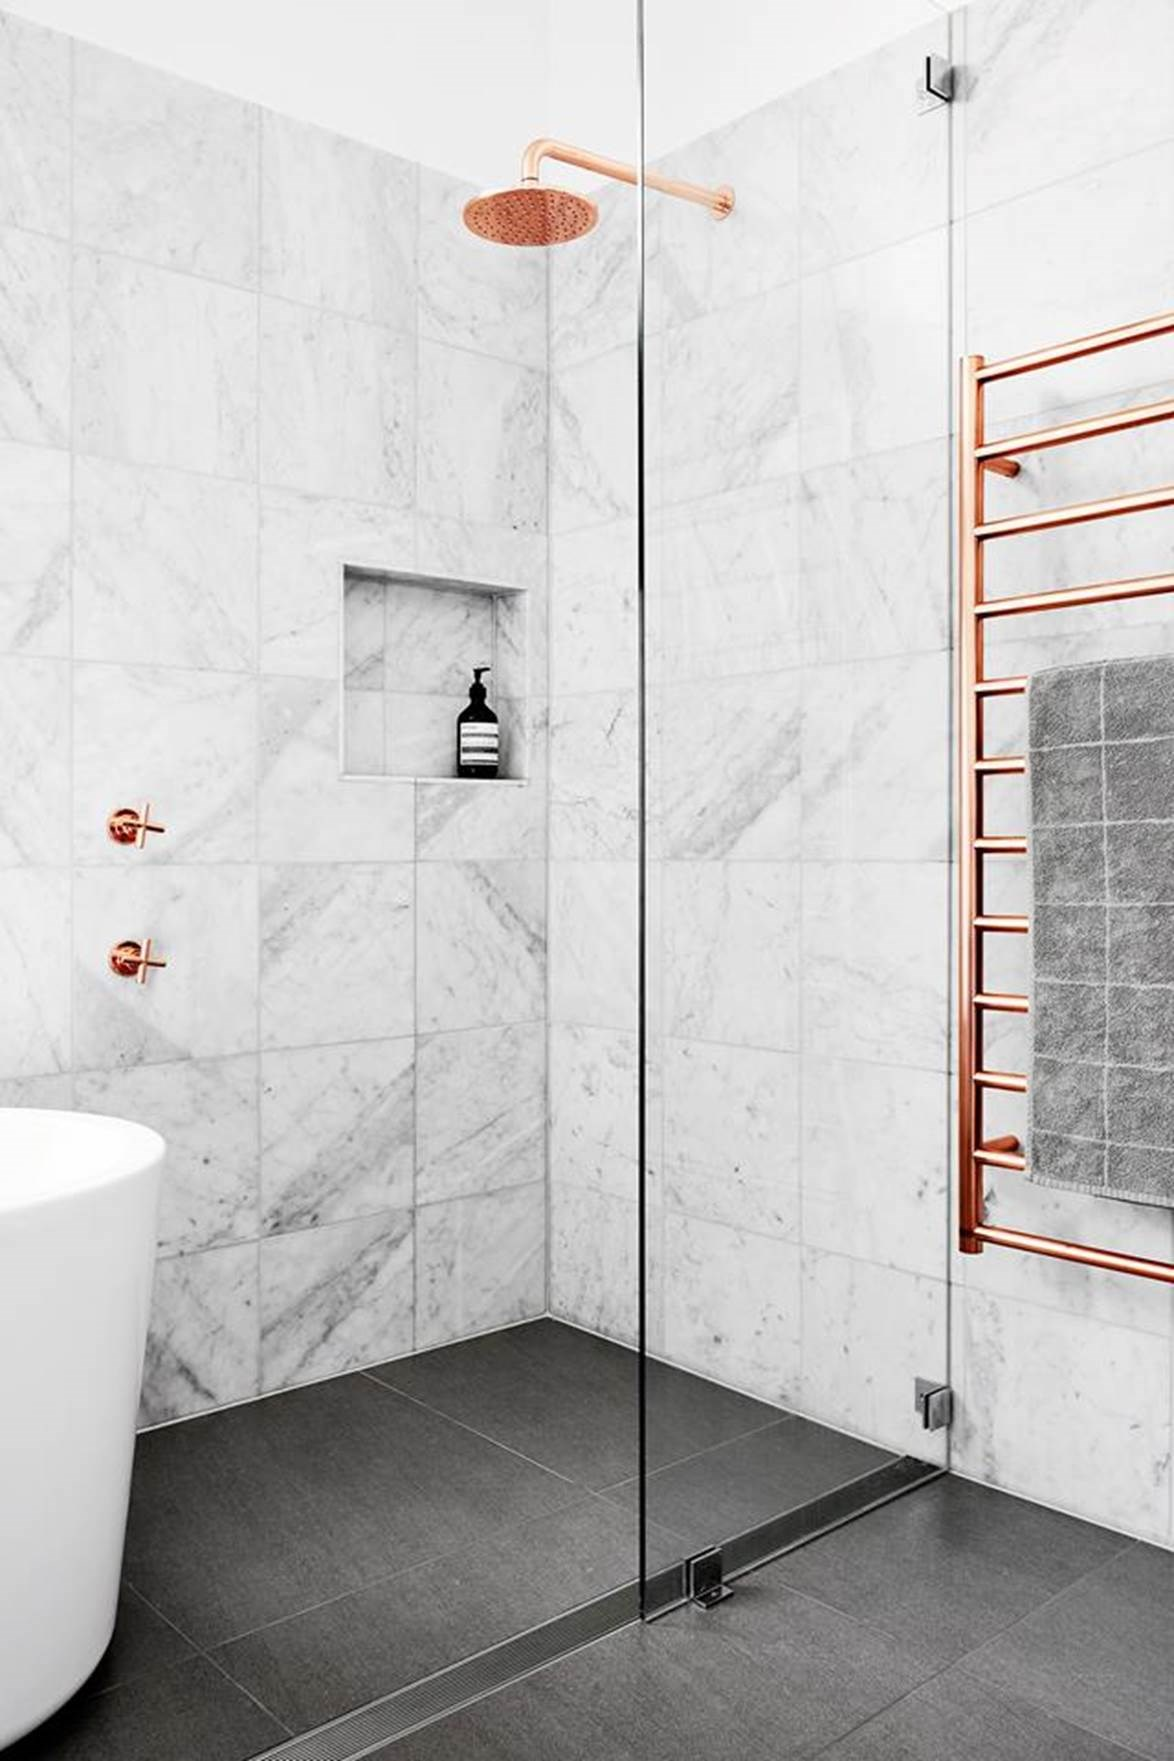 No one likes stepping onto cold tiles after a hot shower. Install underfloor heating and heated towel rails for year round comfort.